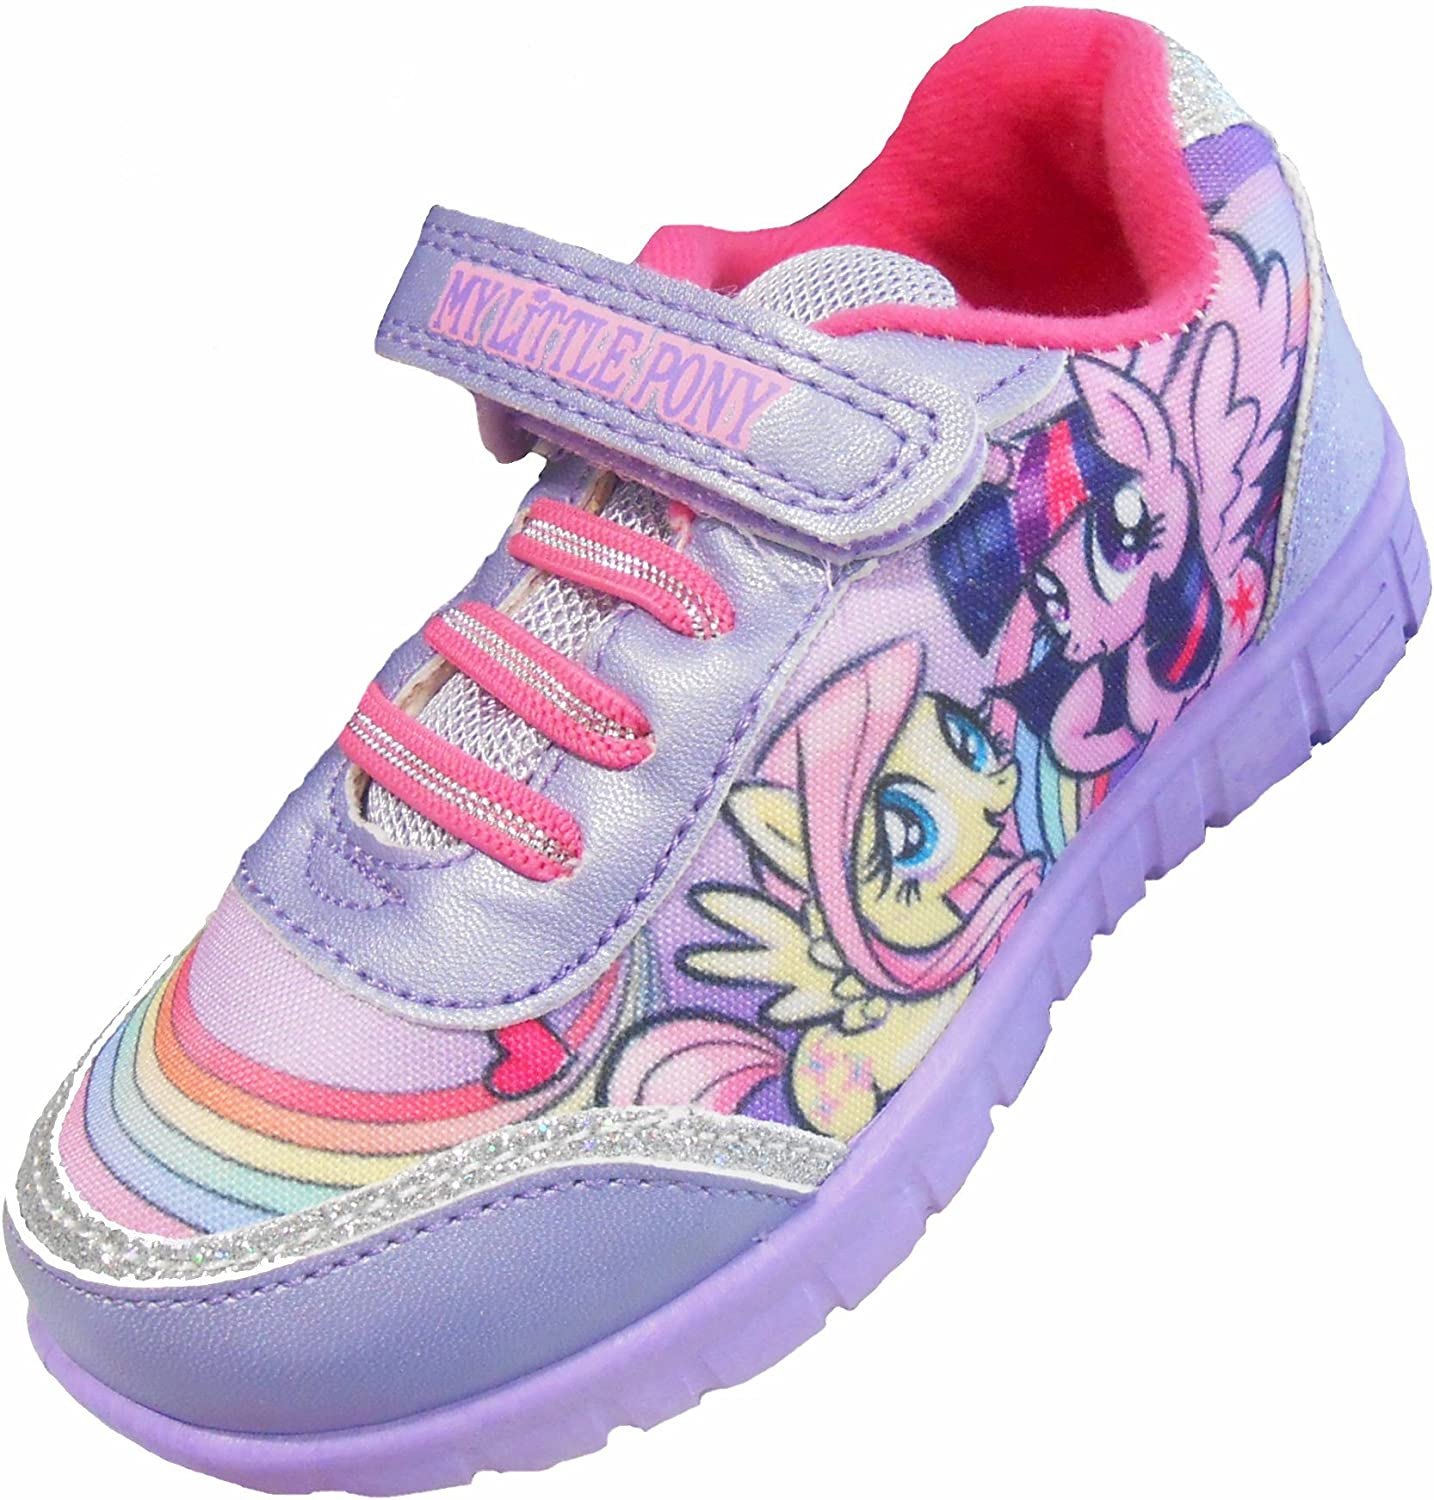 My Little Pony Girls Lilac Trainer Shoes